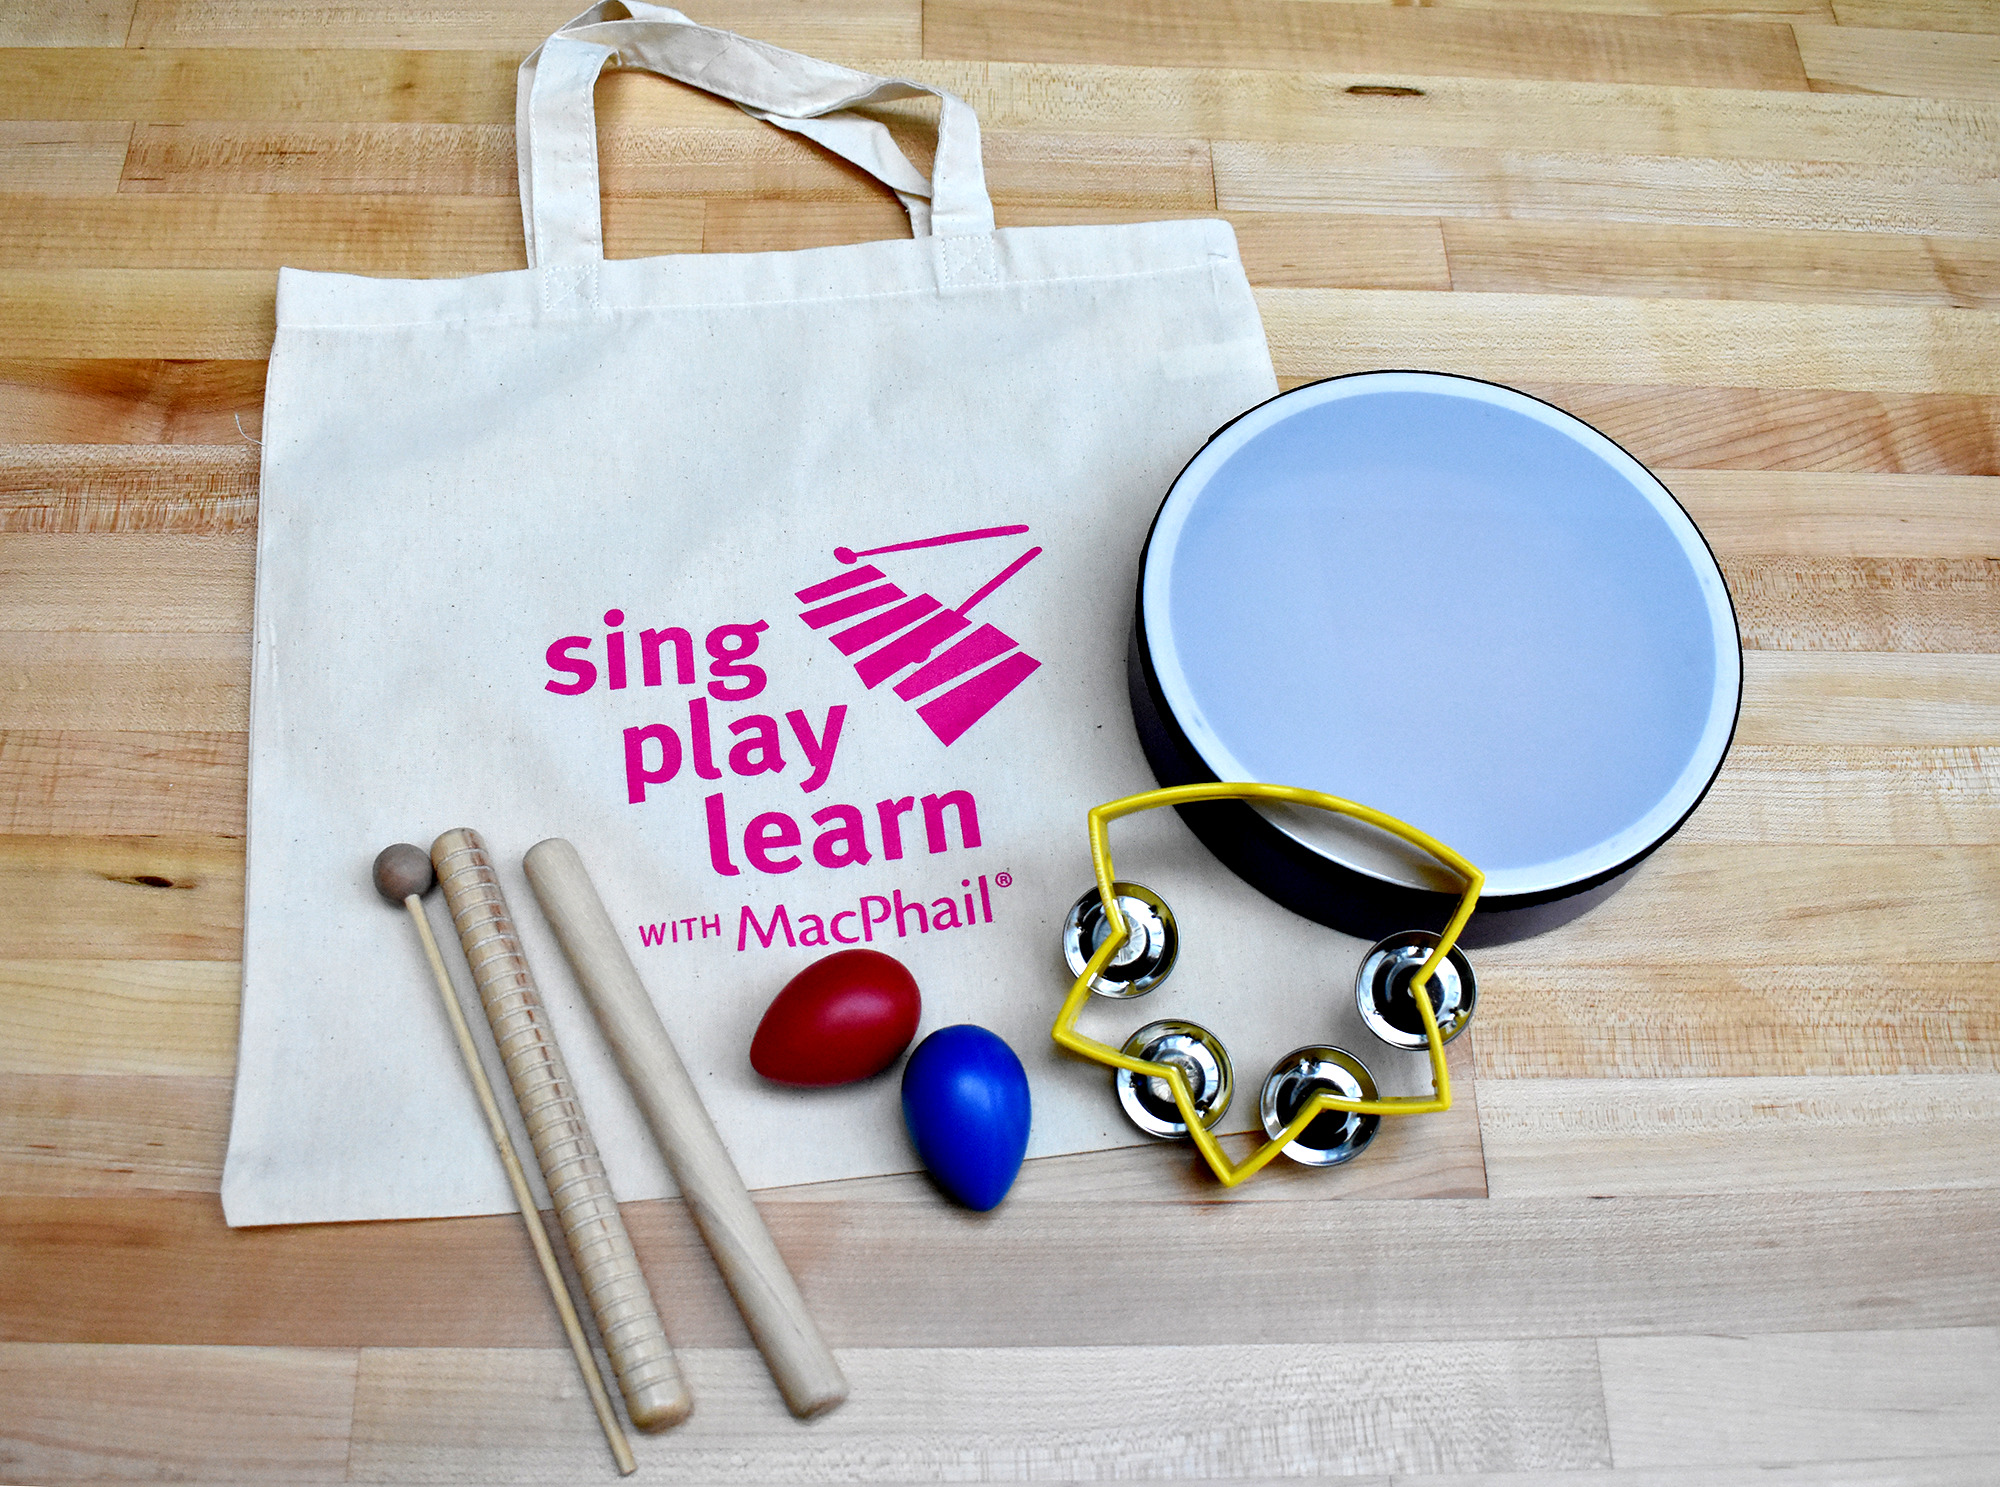 Sing Play Learn with MacPhail Jam Kit